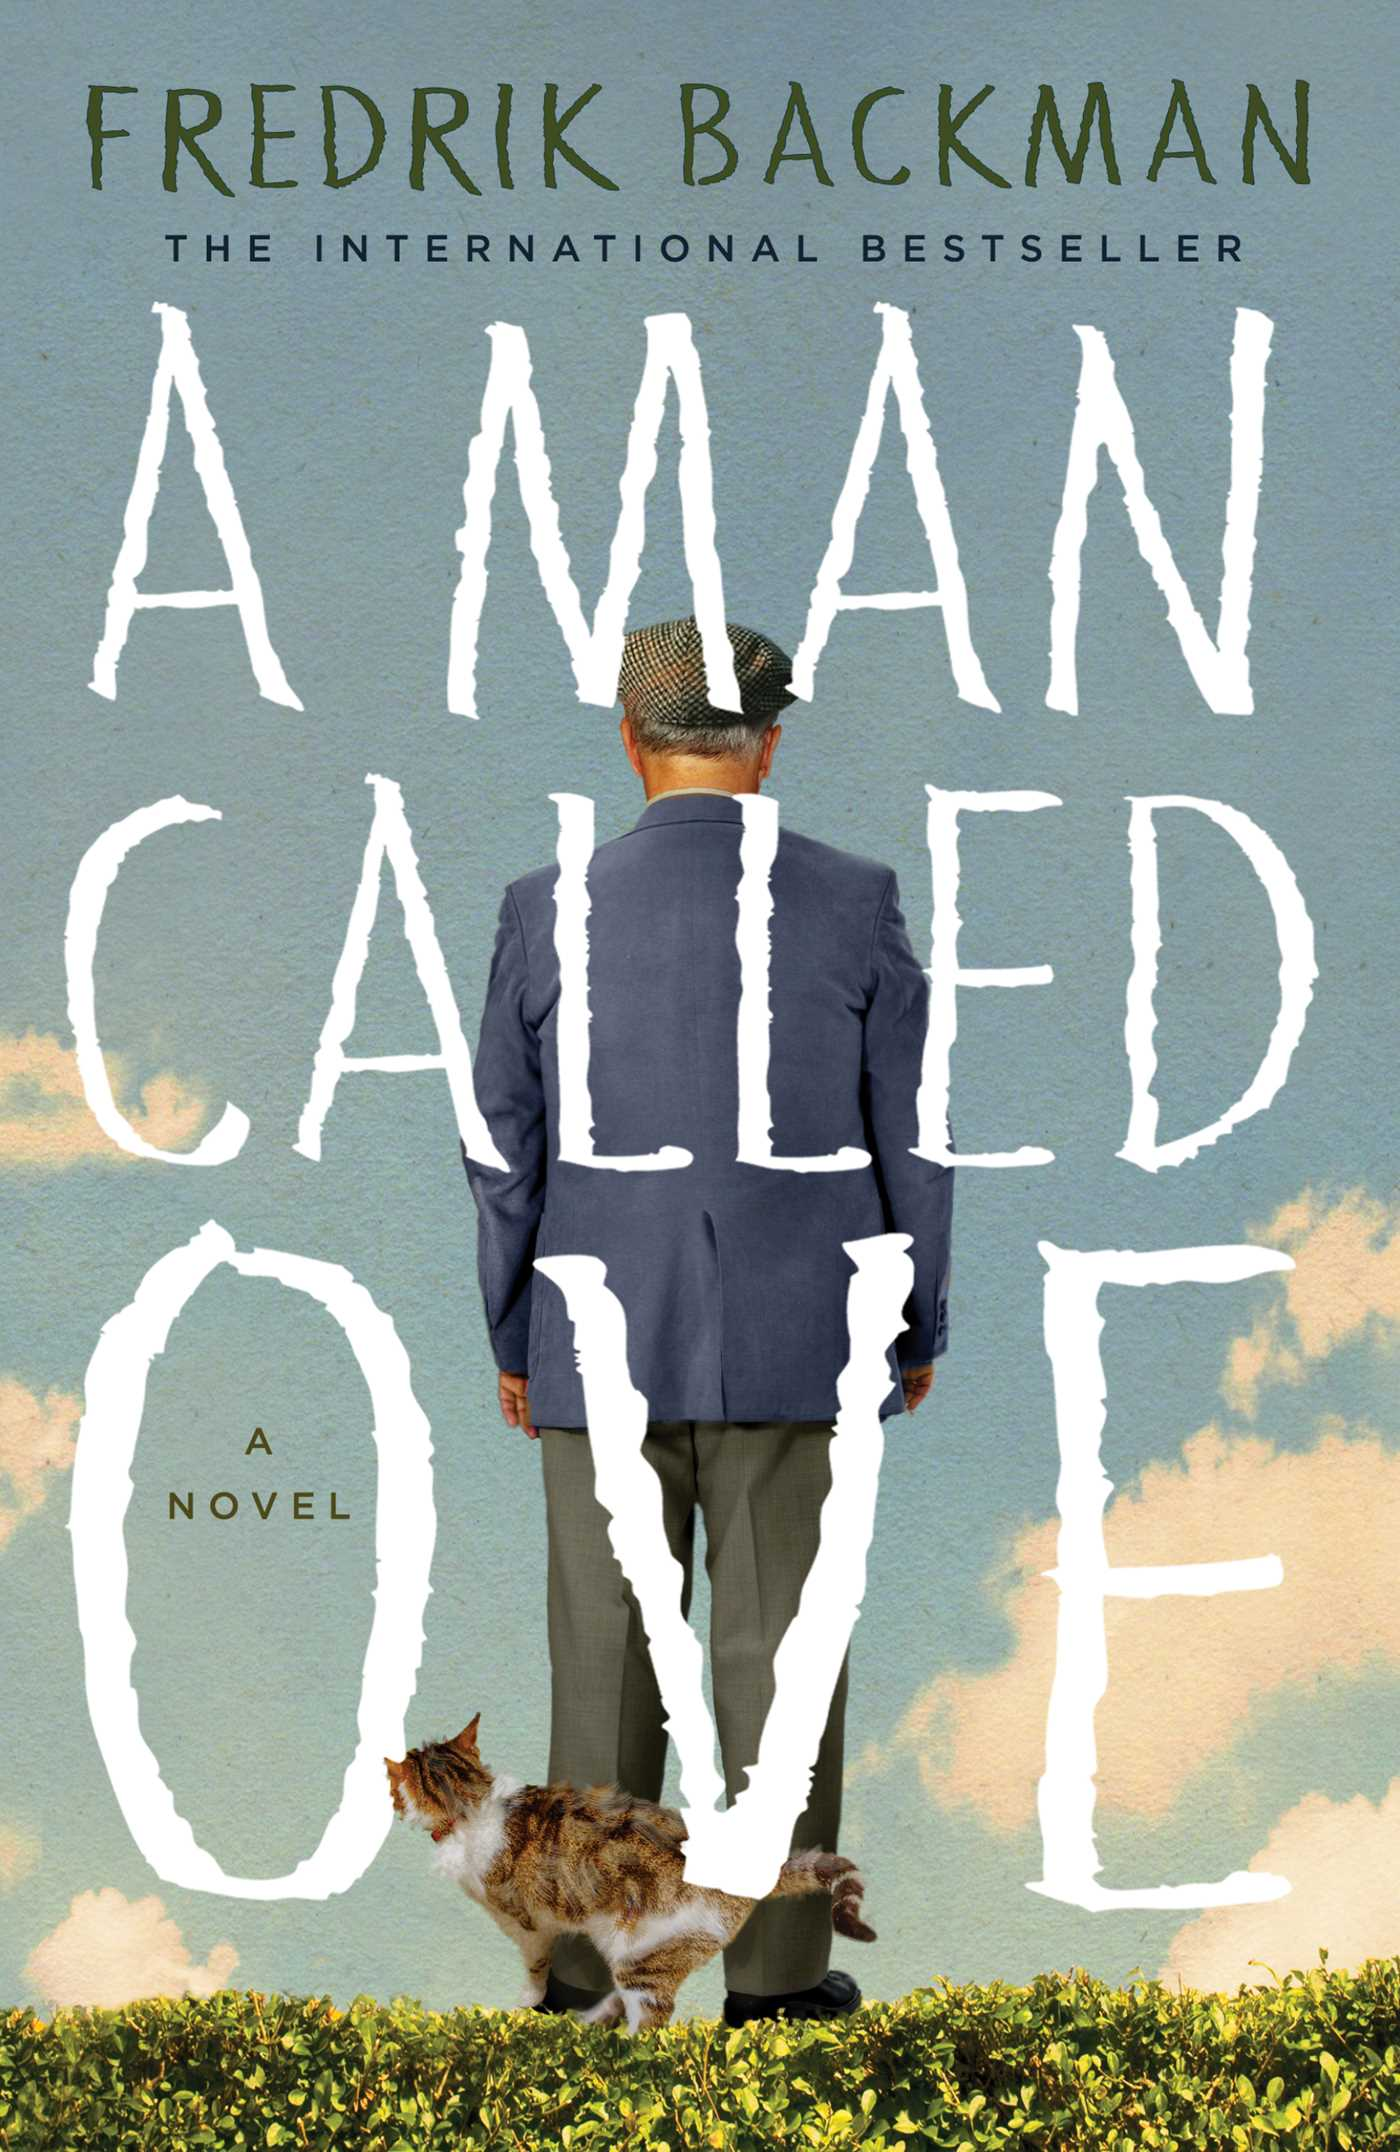 Man-called-ove-9781476738017_hr